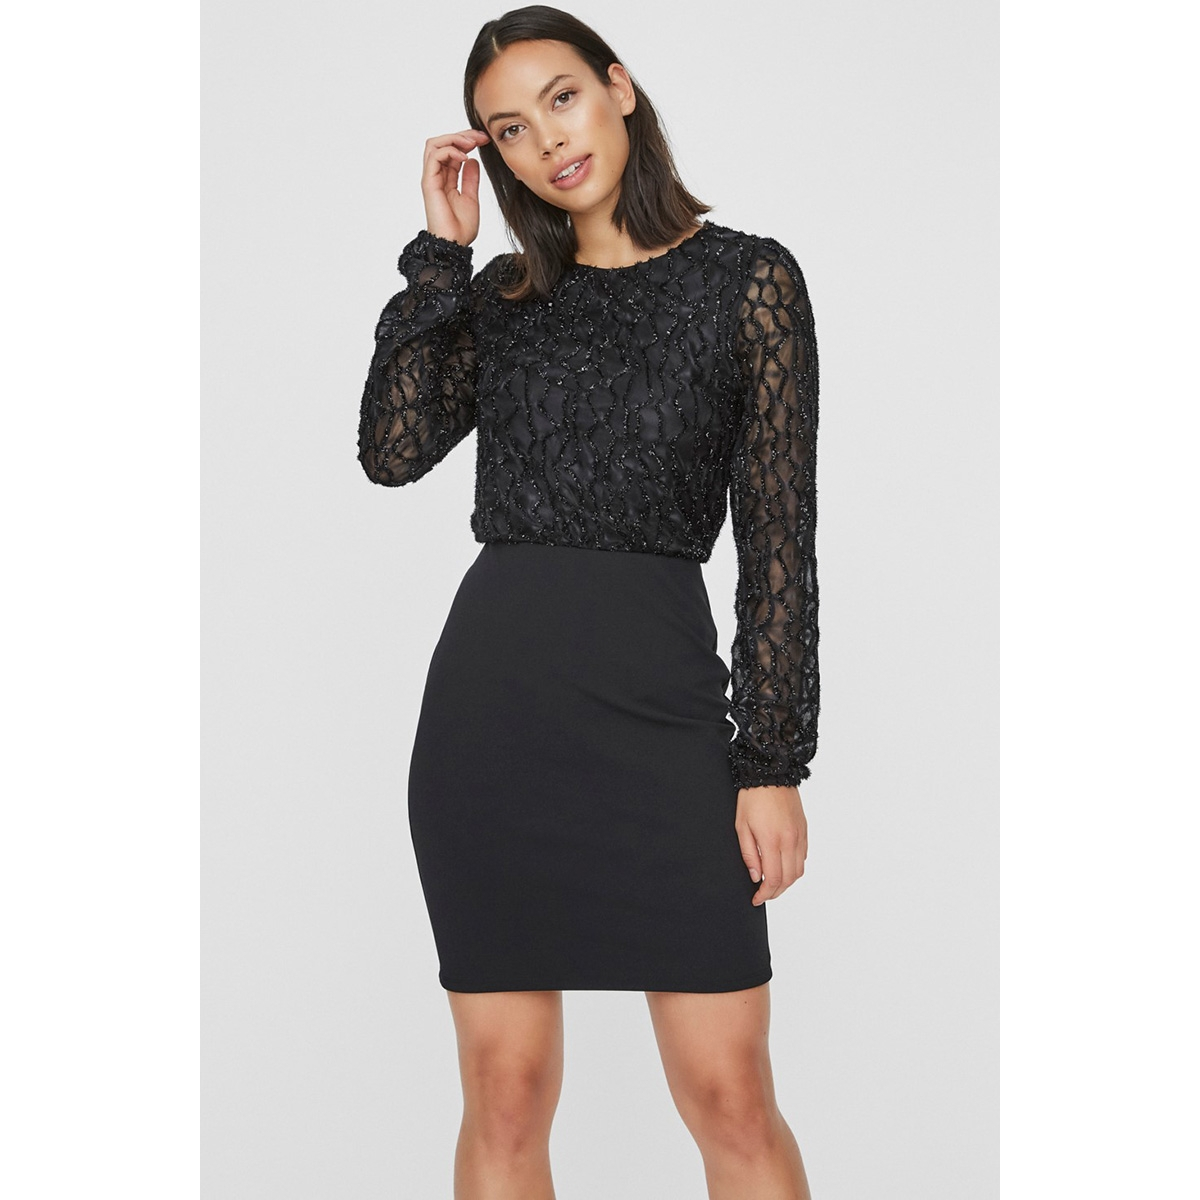 vmdoris ls short dress jrs 10221643 vero moda jurk black/glitter